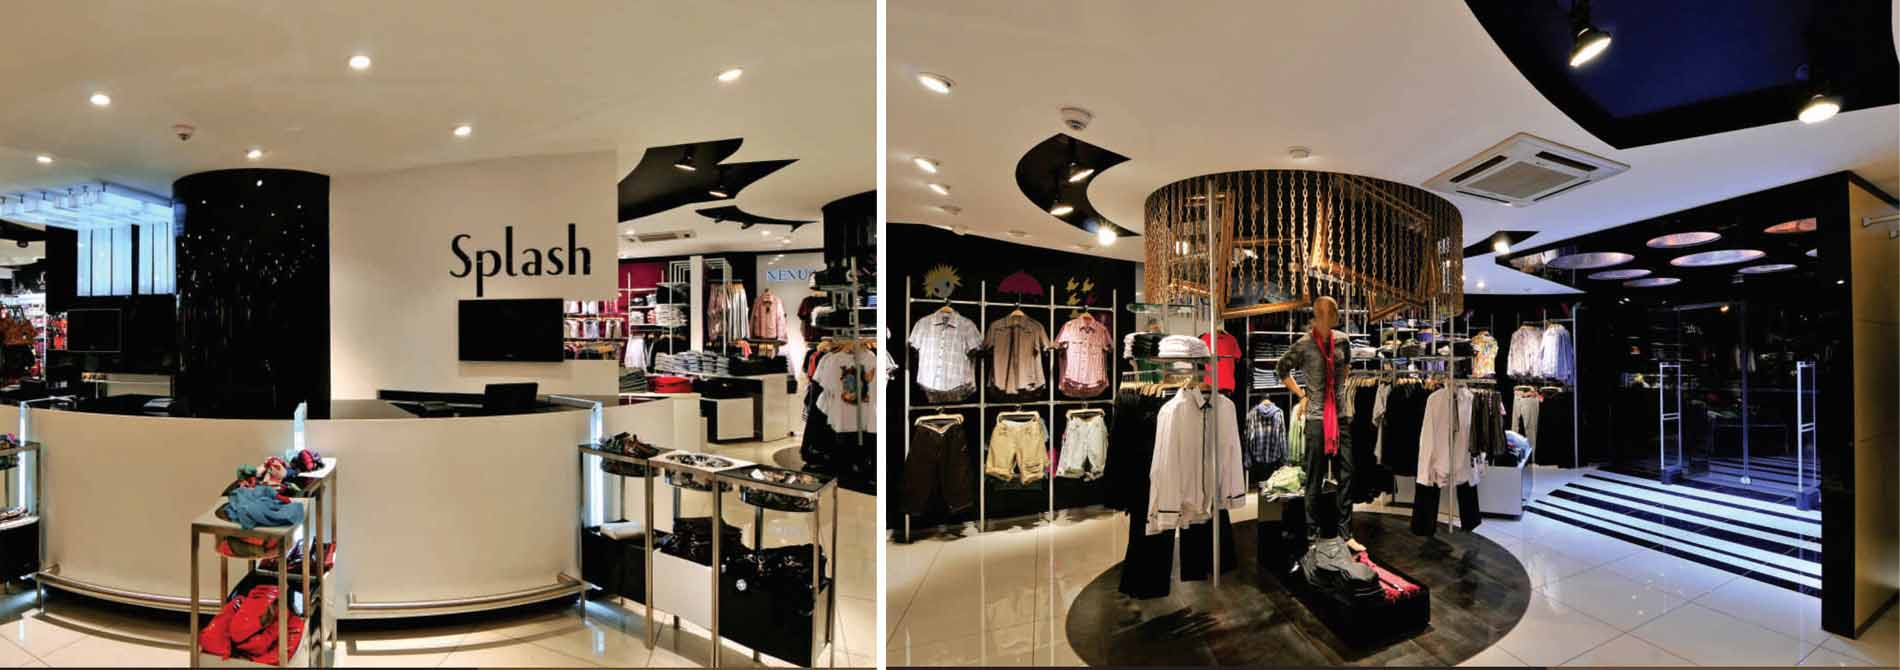 retail shop solutions in Doha Qatar